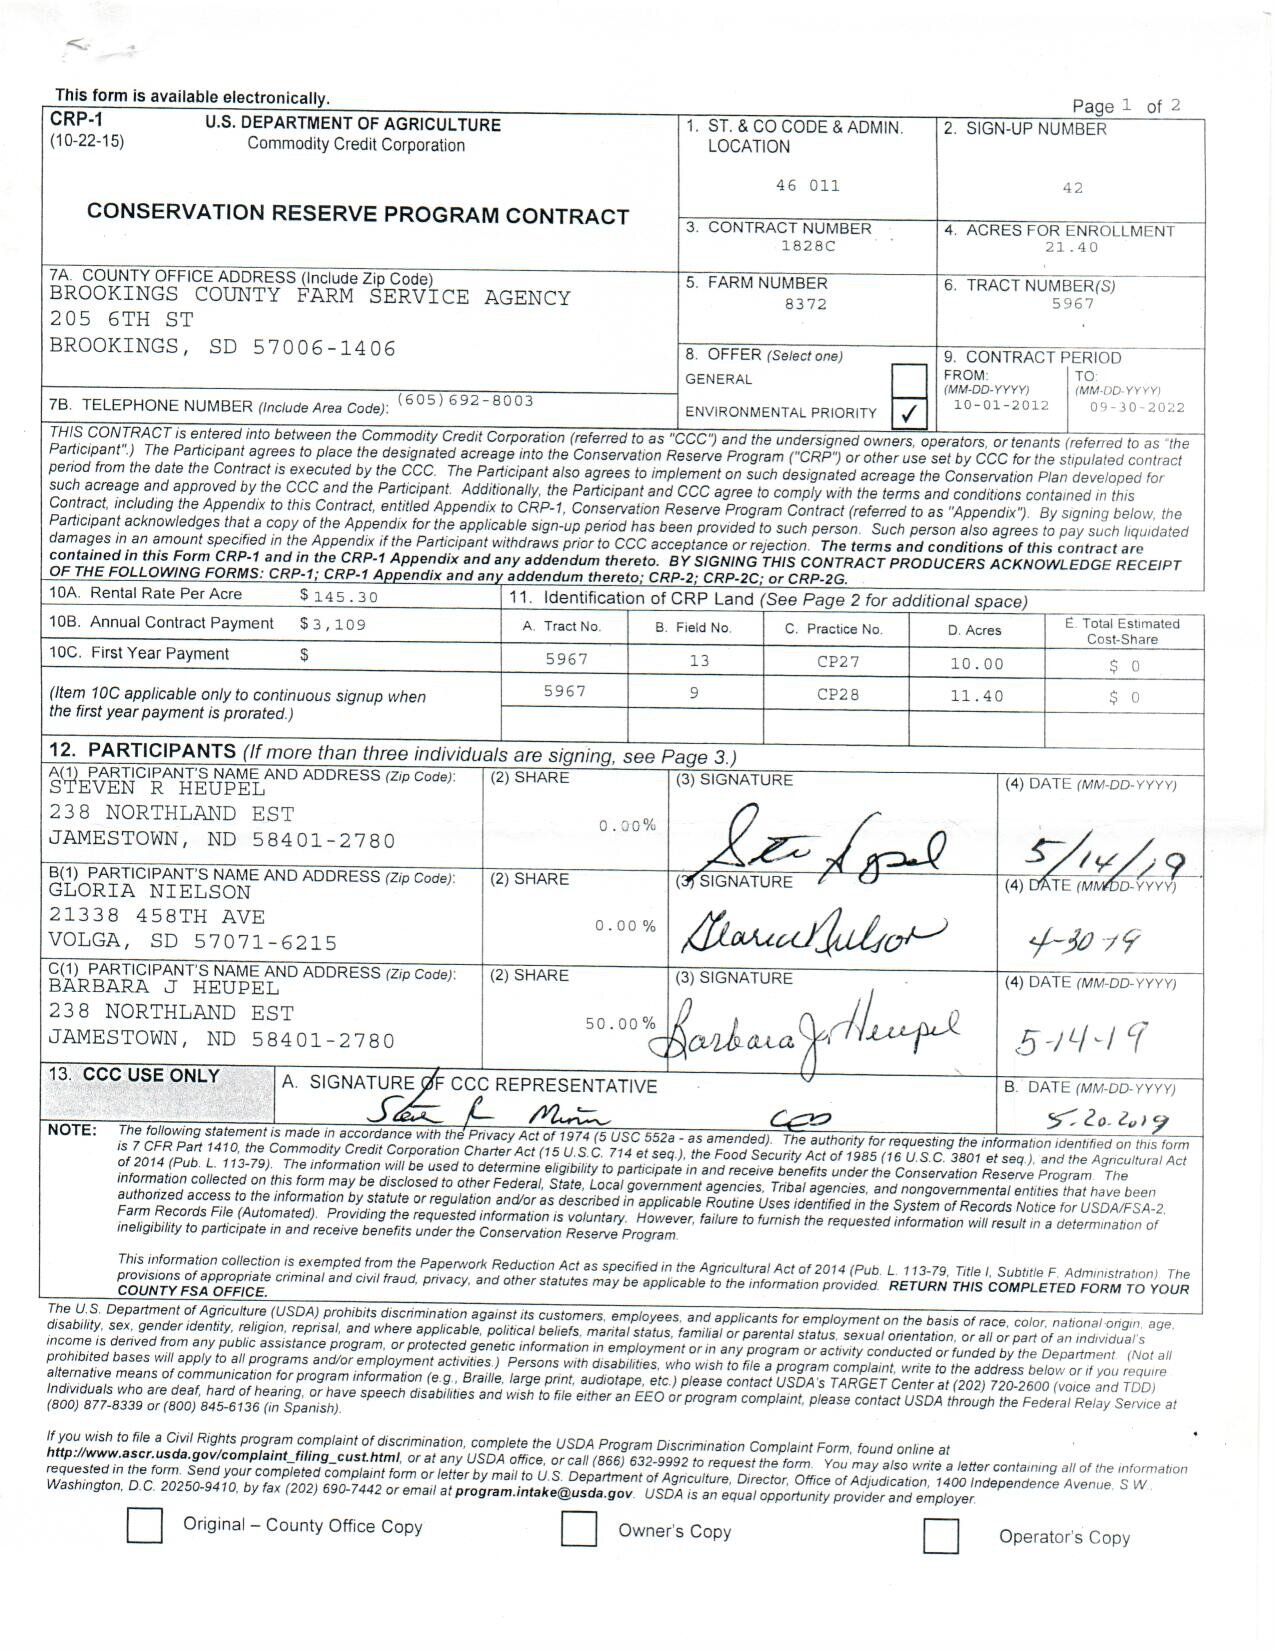 CRP Contract 2